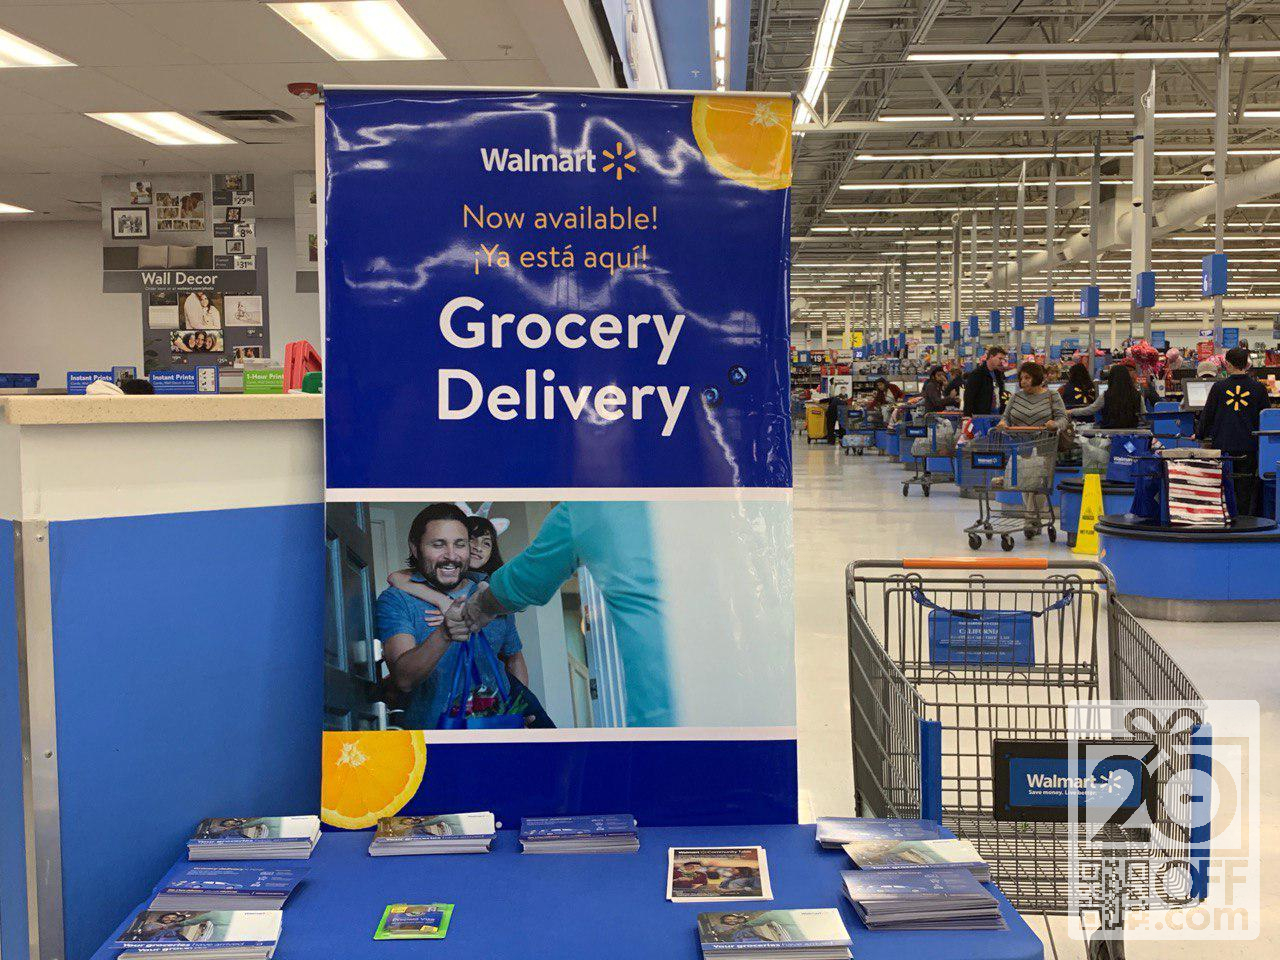 Walmart's Grocery Delivery